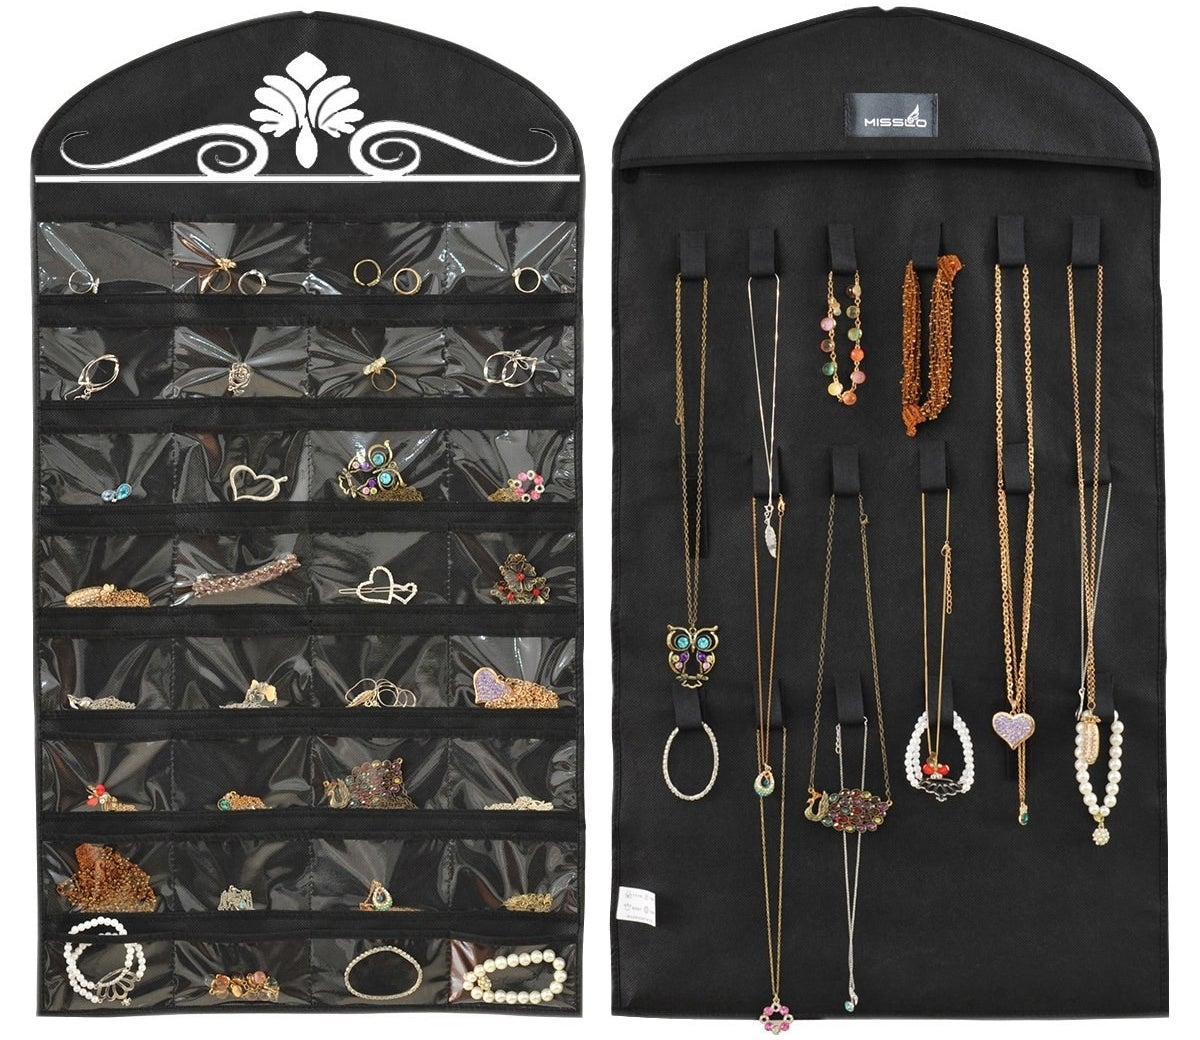 the black organizer holding various piece of jewelry